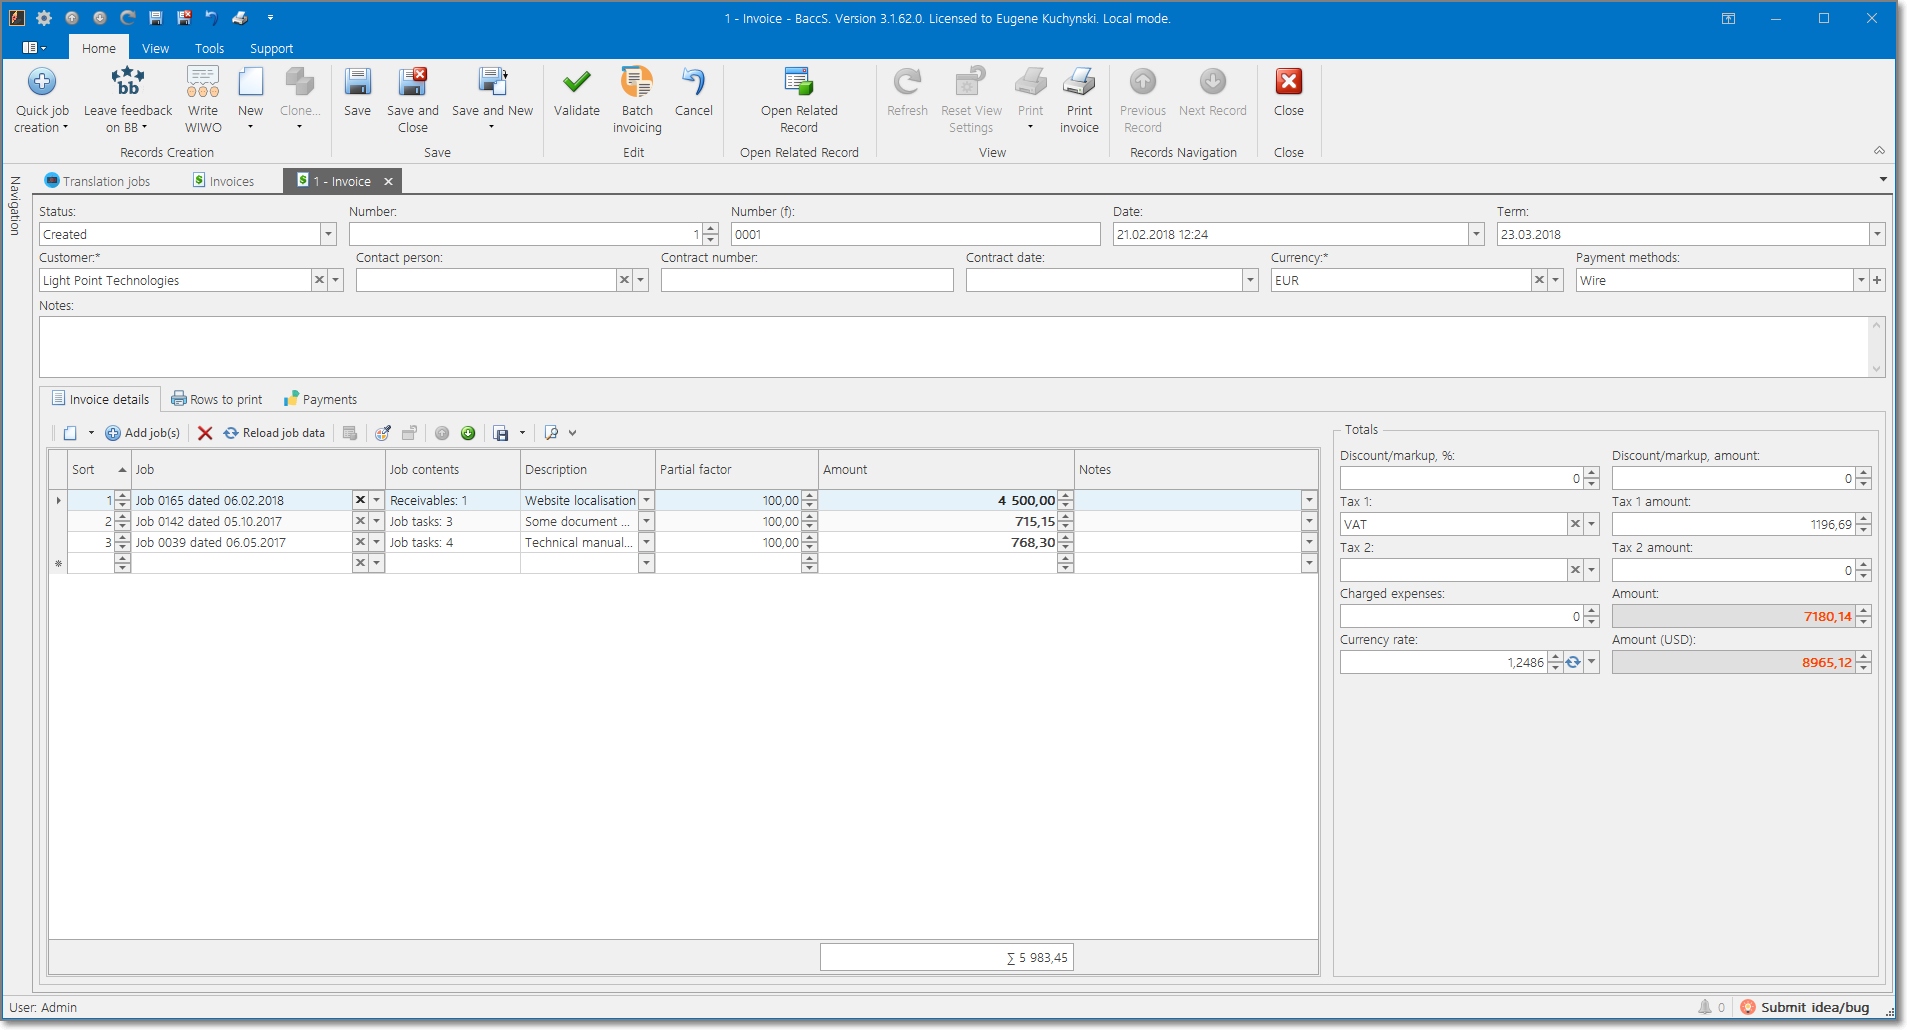 Invoice editing in BaccS - translation project management software for freelancers